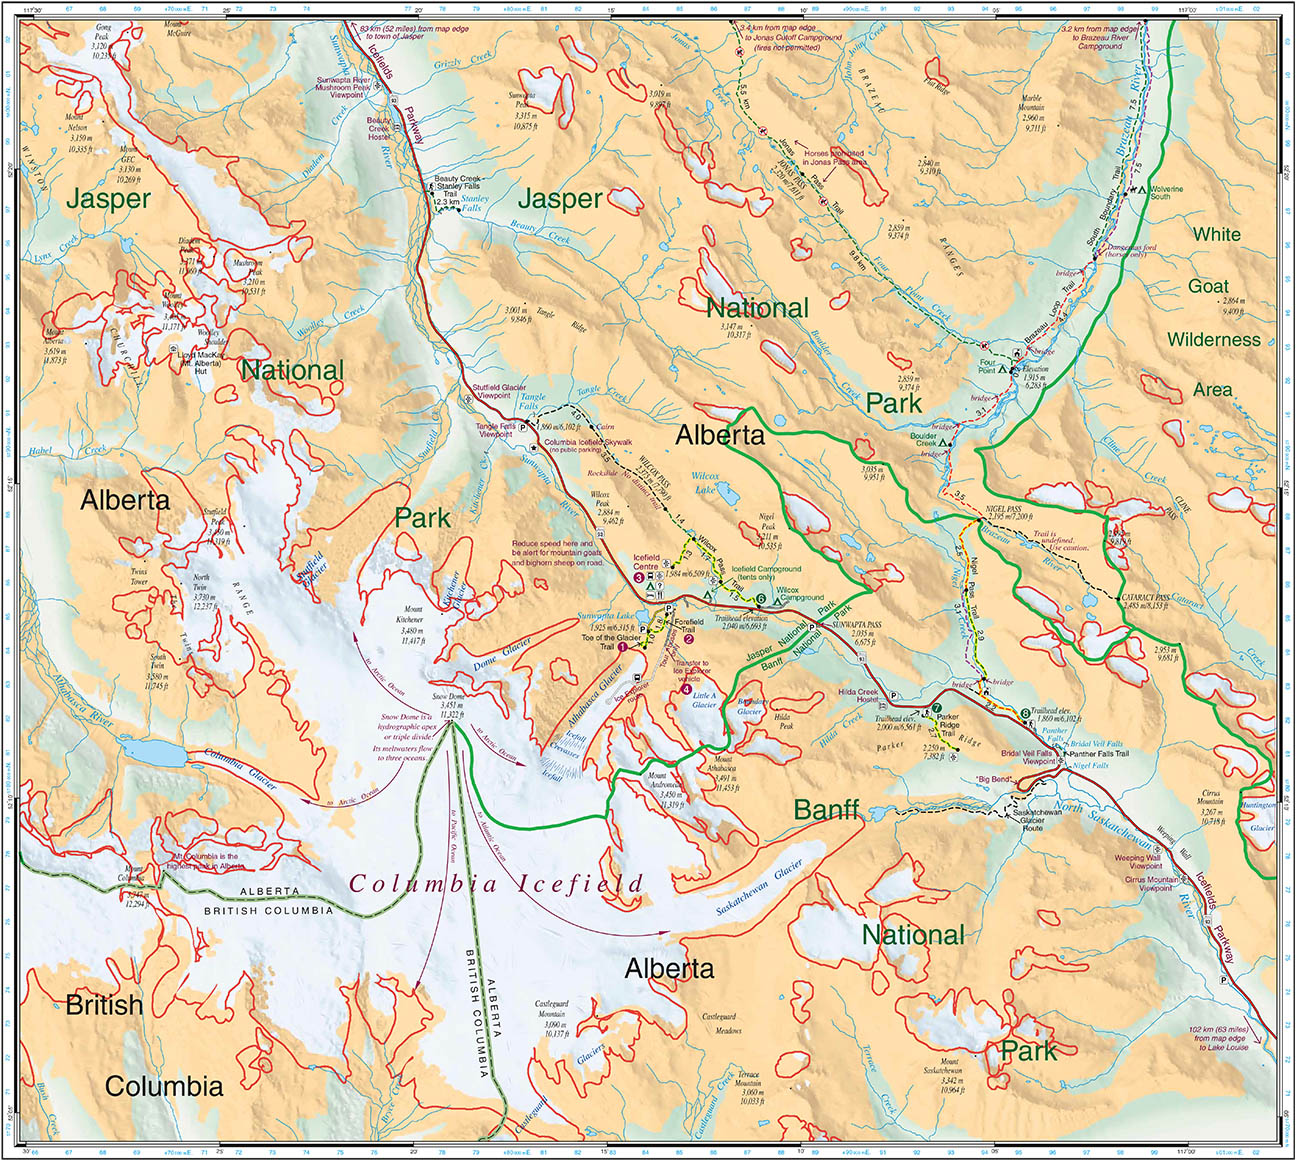 columbia icefield glacial extents